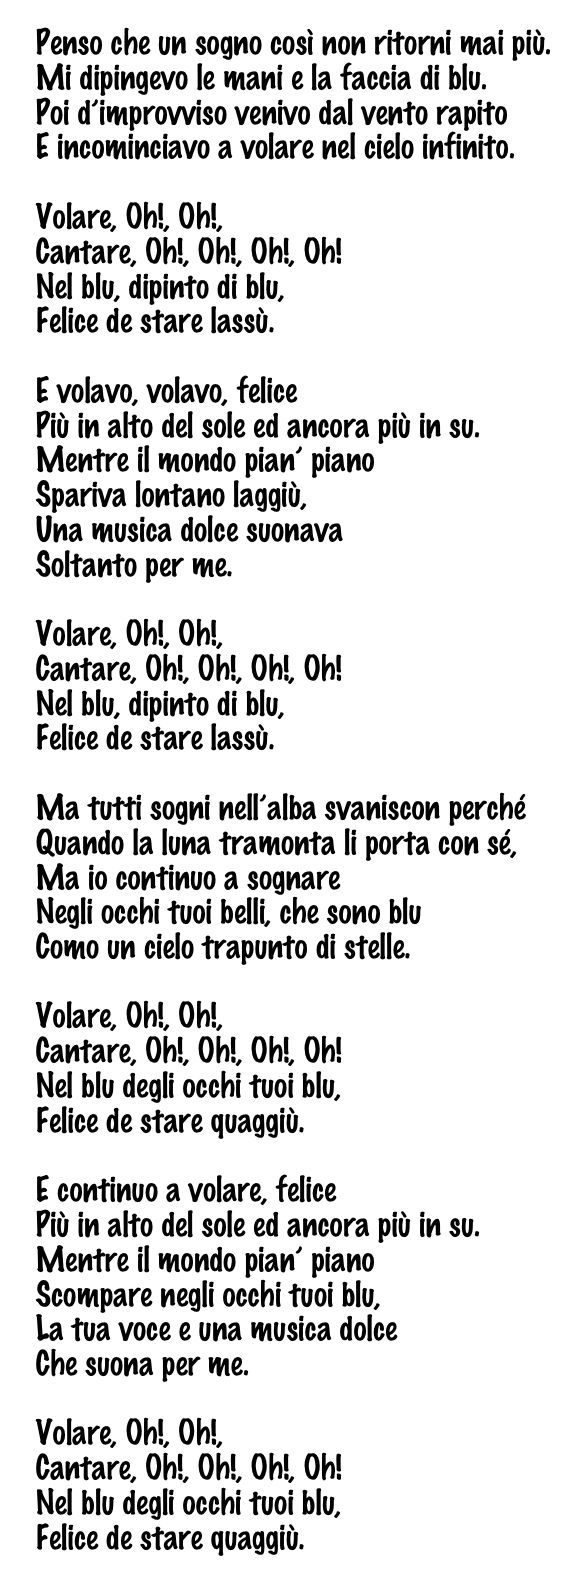 """Nel blu dipinto di blu"" (In the Blue, Painted Blue), popularly known as ""Volare"", is a song recorded by Italian singer-songwriter Domenico Modugno. Written by Franco Migliacci and Domenico Modugno, it was released as a single on 1 February 1958."